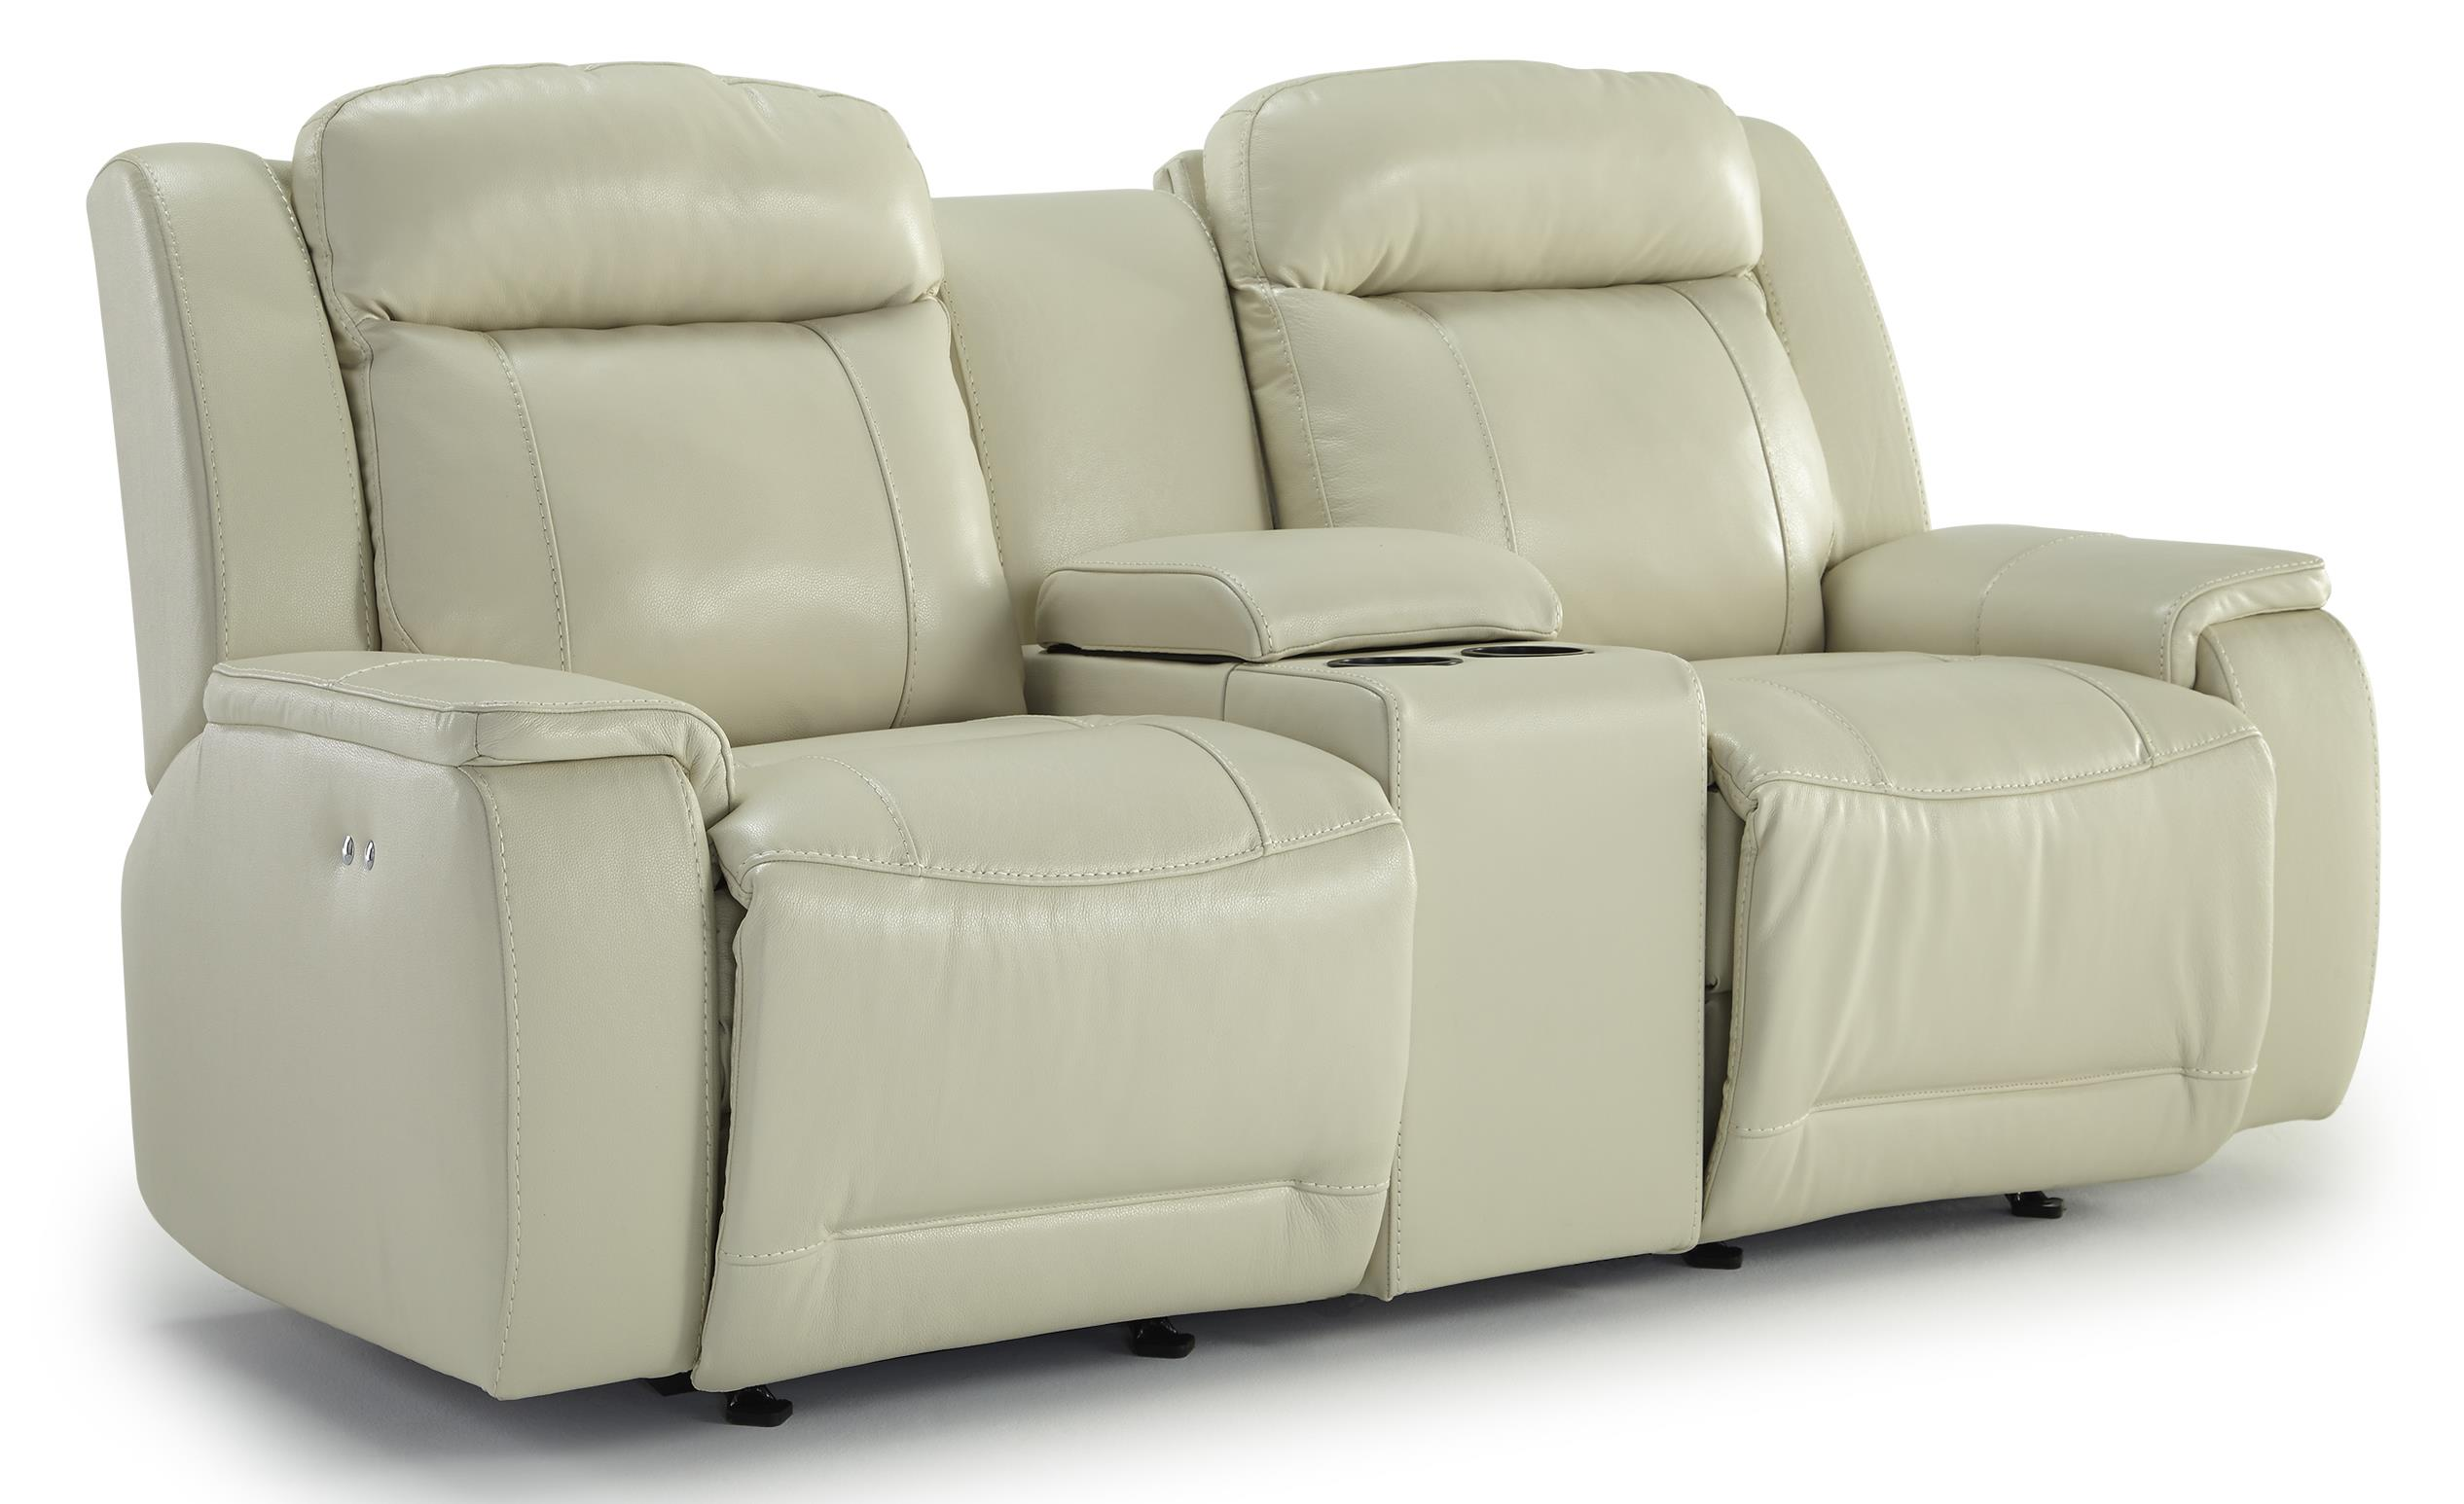 Best Home Furnishings Hardisty Rocking Reclining Loveseat w/ Console - Item Number: L680CC7-76507LV